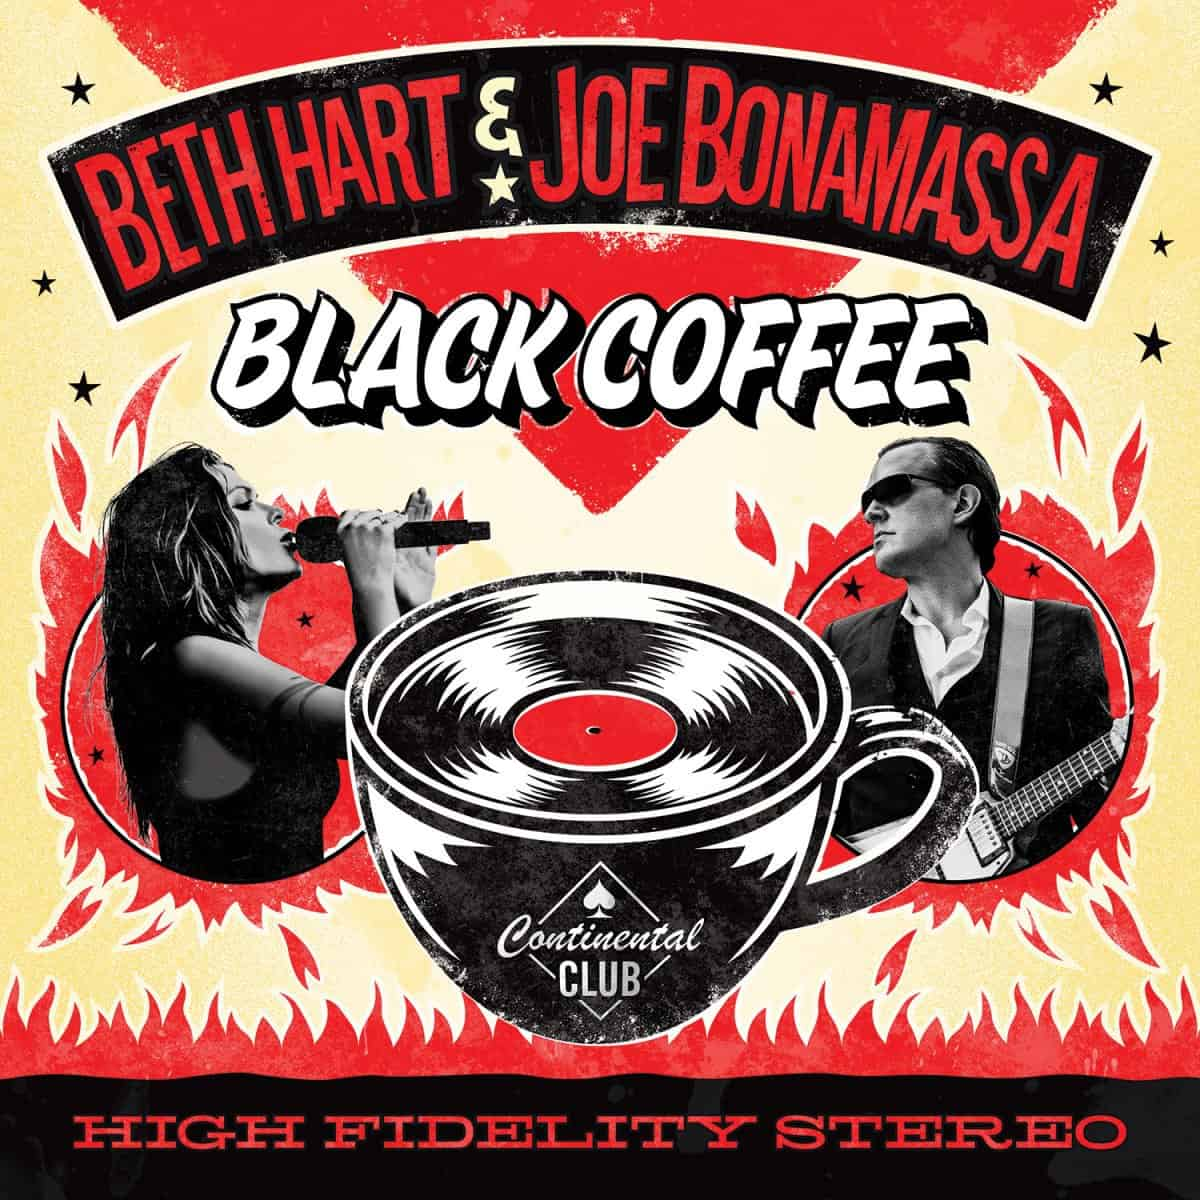 Beth-Hart-and-Joe-Bonamassa-Black-Coffee-1-1200x1200